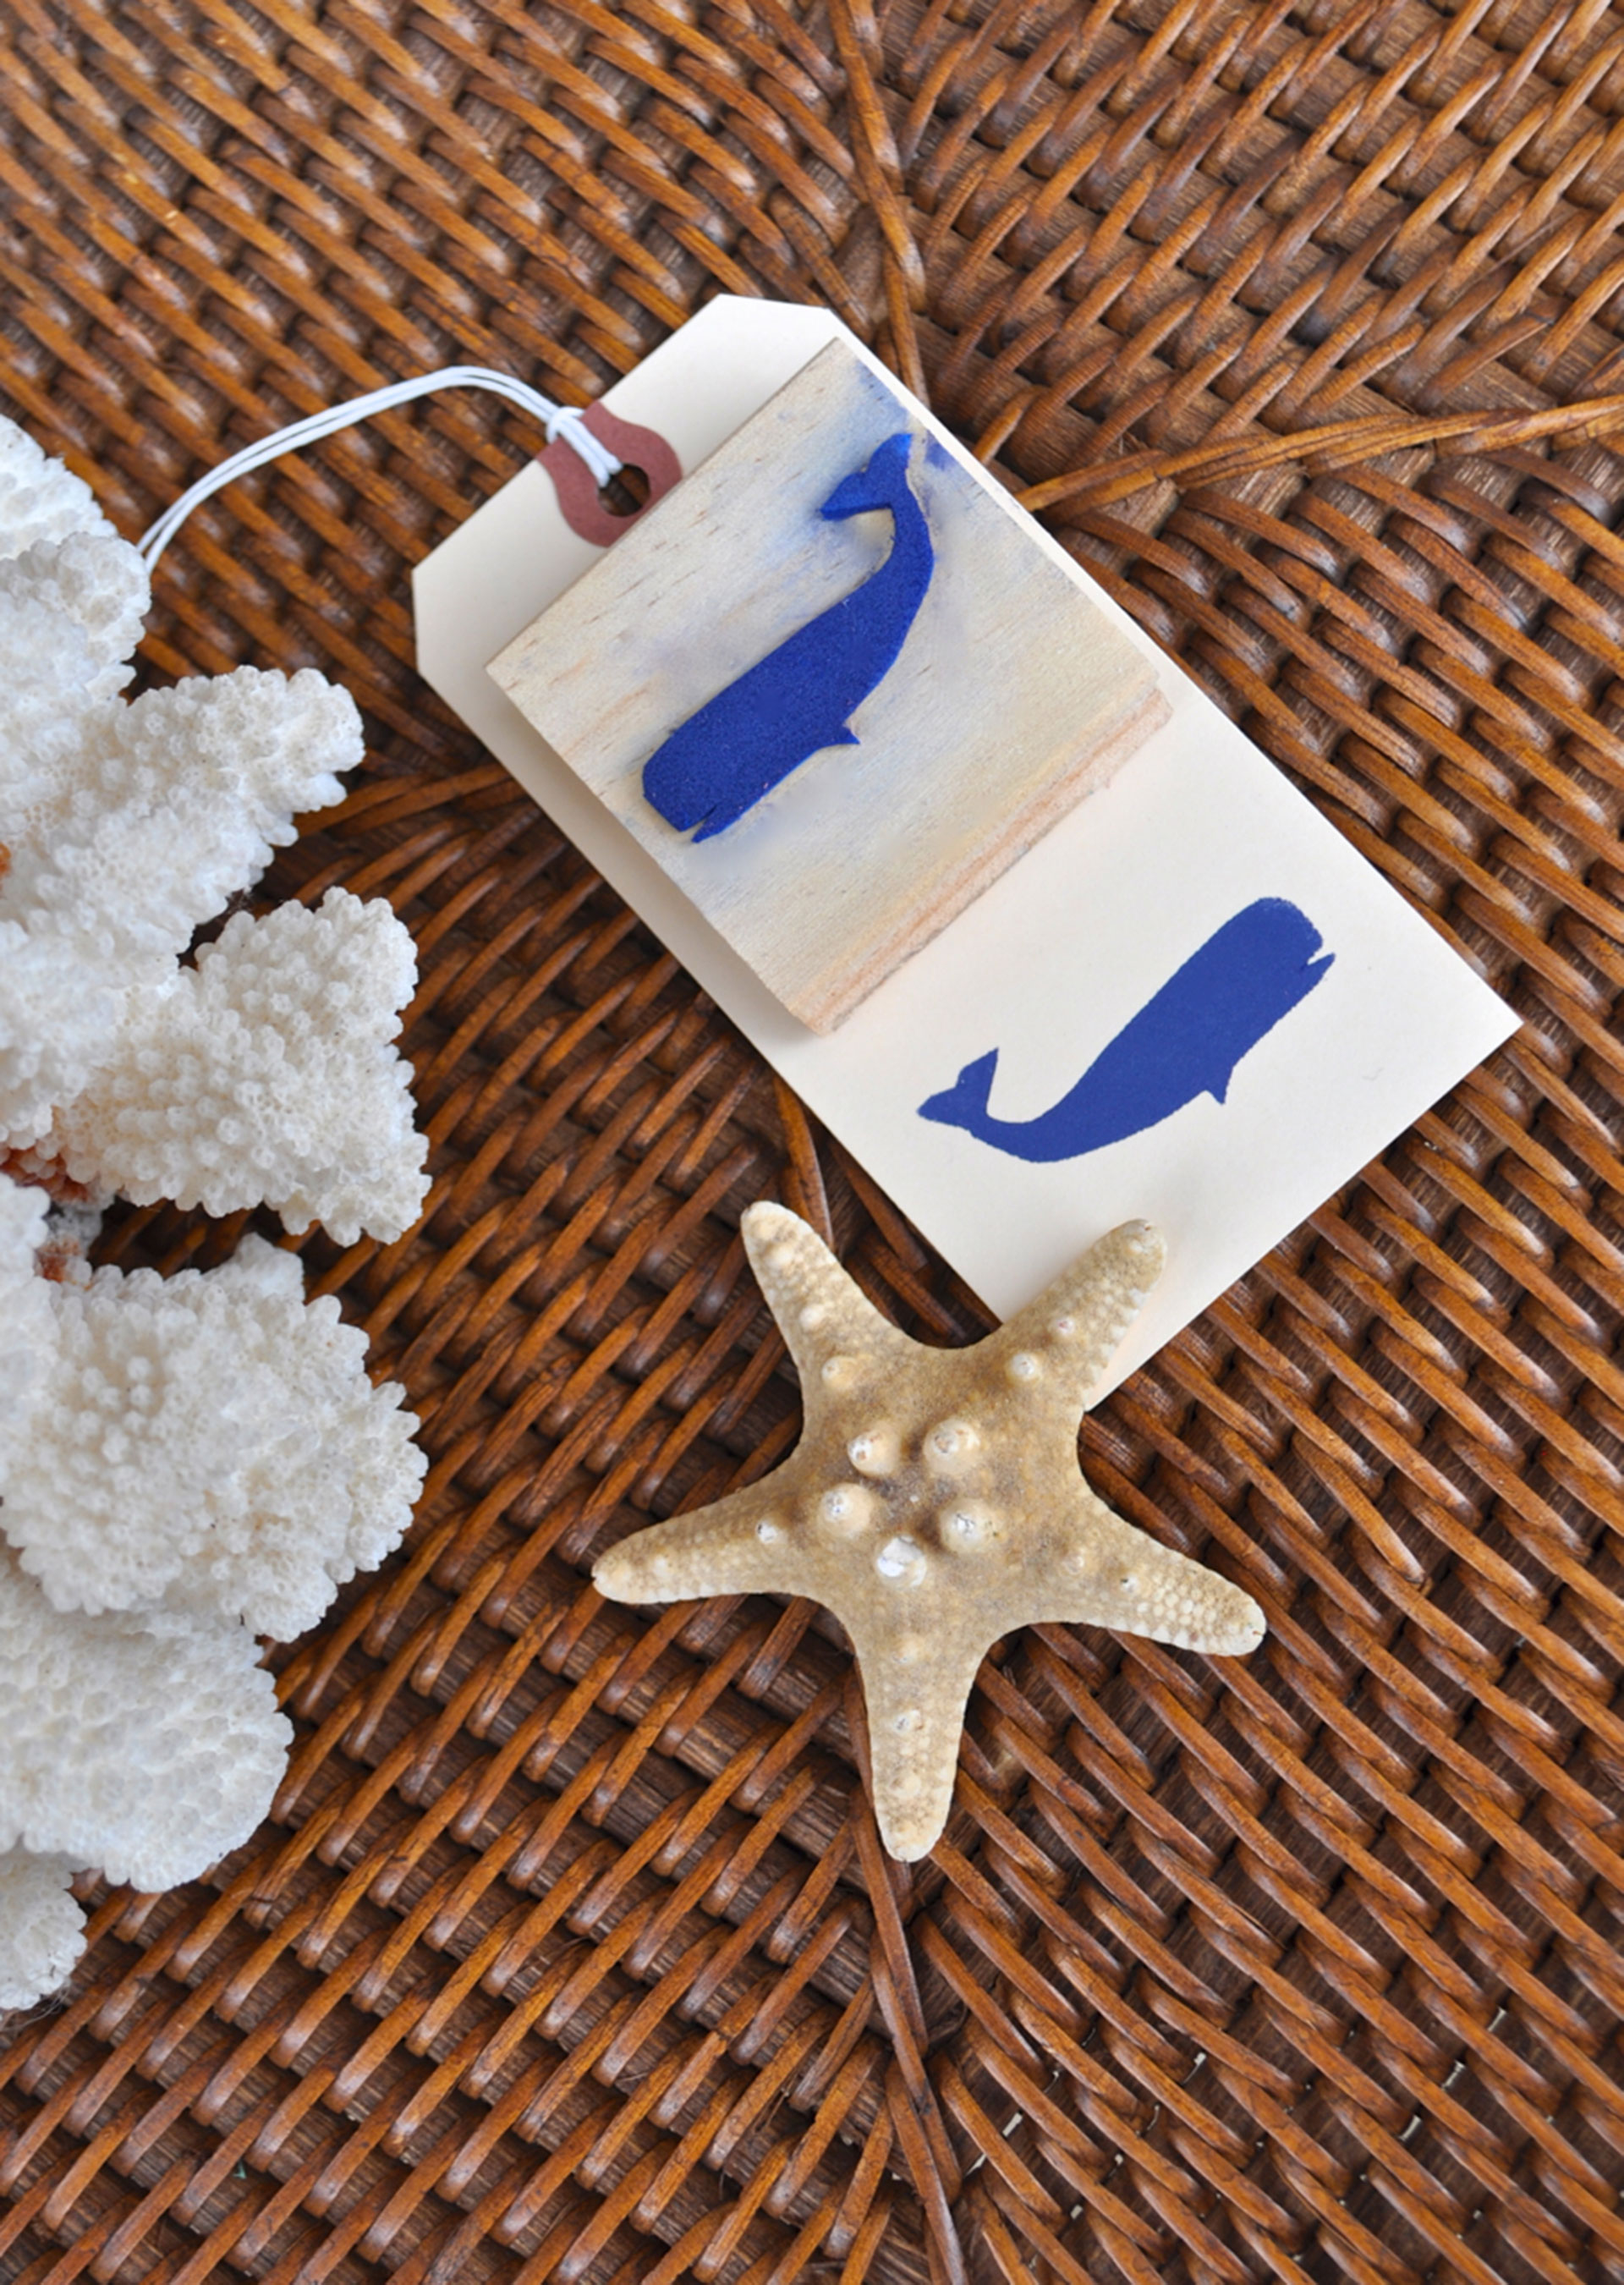 Nautical crafts to make - Nautical Crafts To Make 1